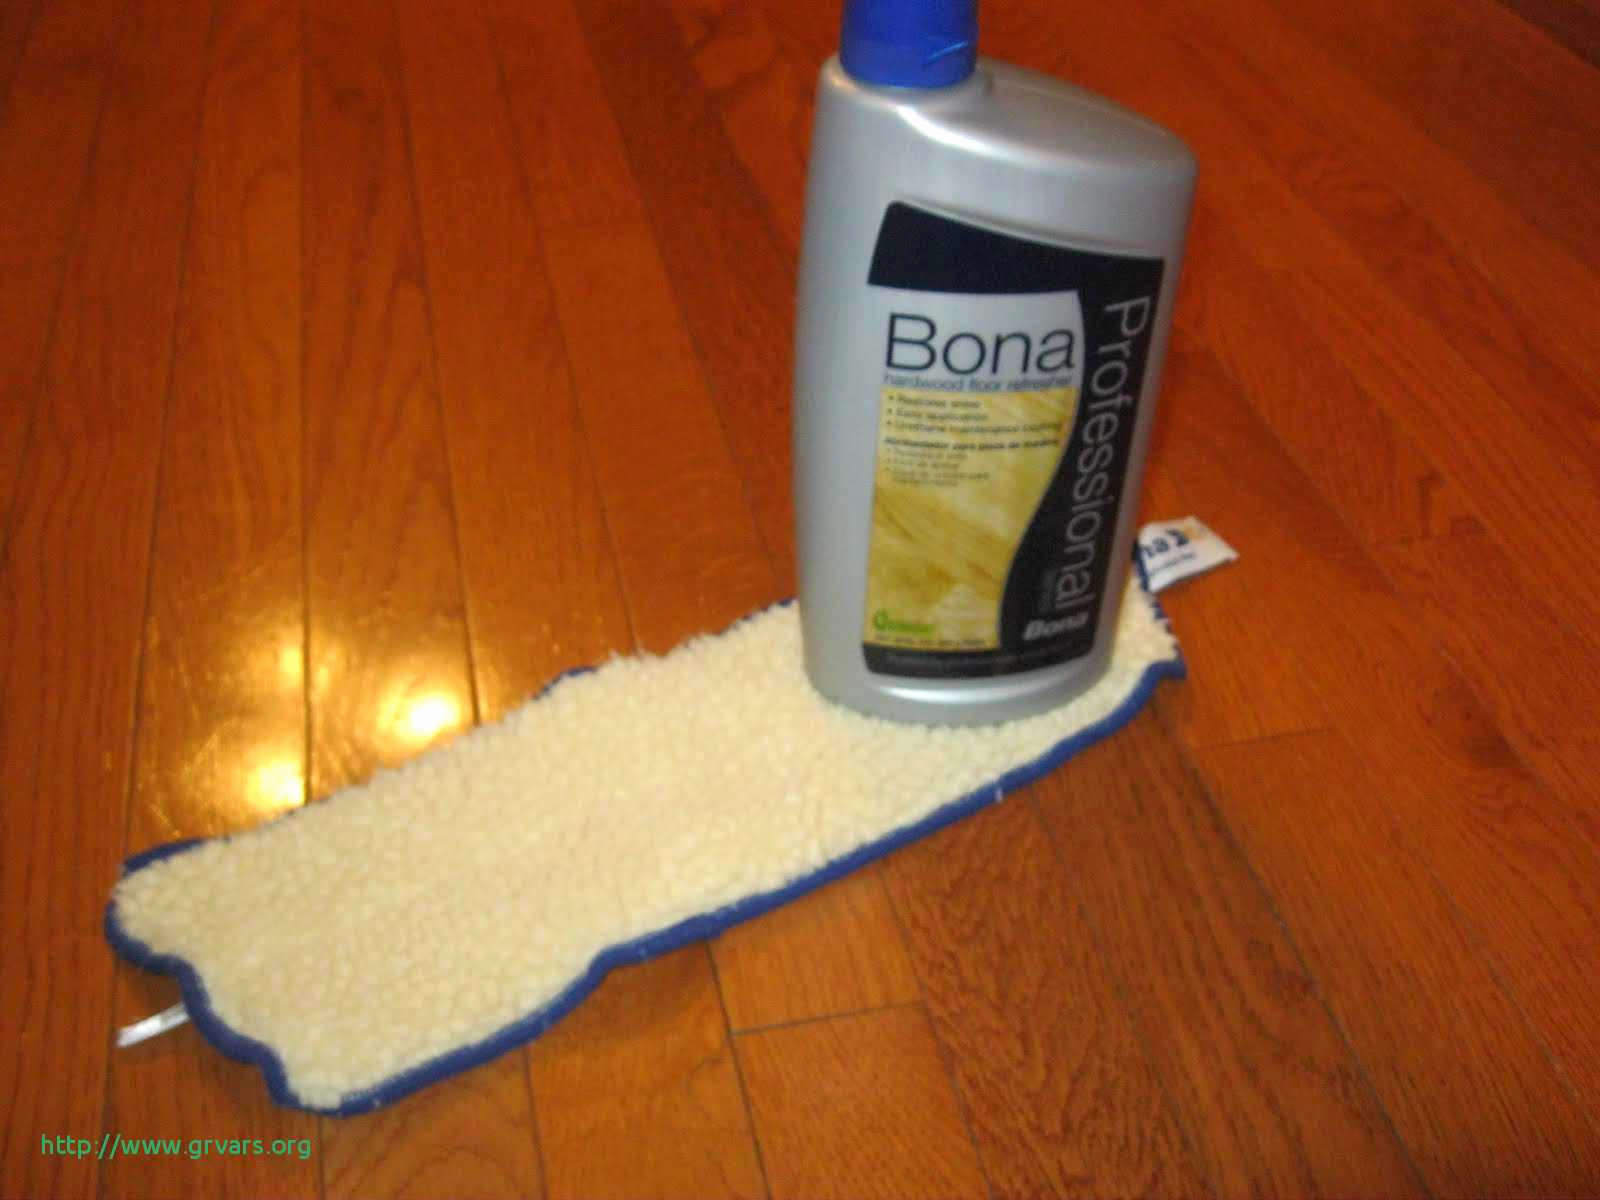 Bruce Hardwood Floor Cleaner Kit Of 46 Elegant the Best Of Bona Hardwood Floor Mop Laminate Mobel Regarding 46 Elegant the Best Of Bona Hardwood Floor Mop Laminate